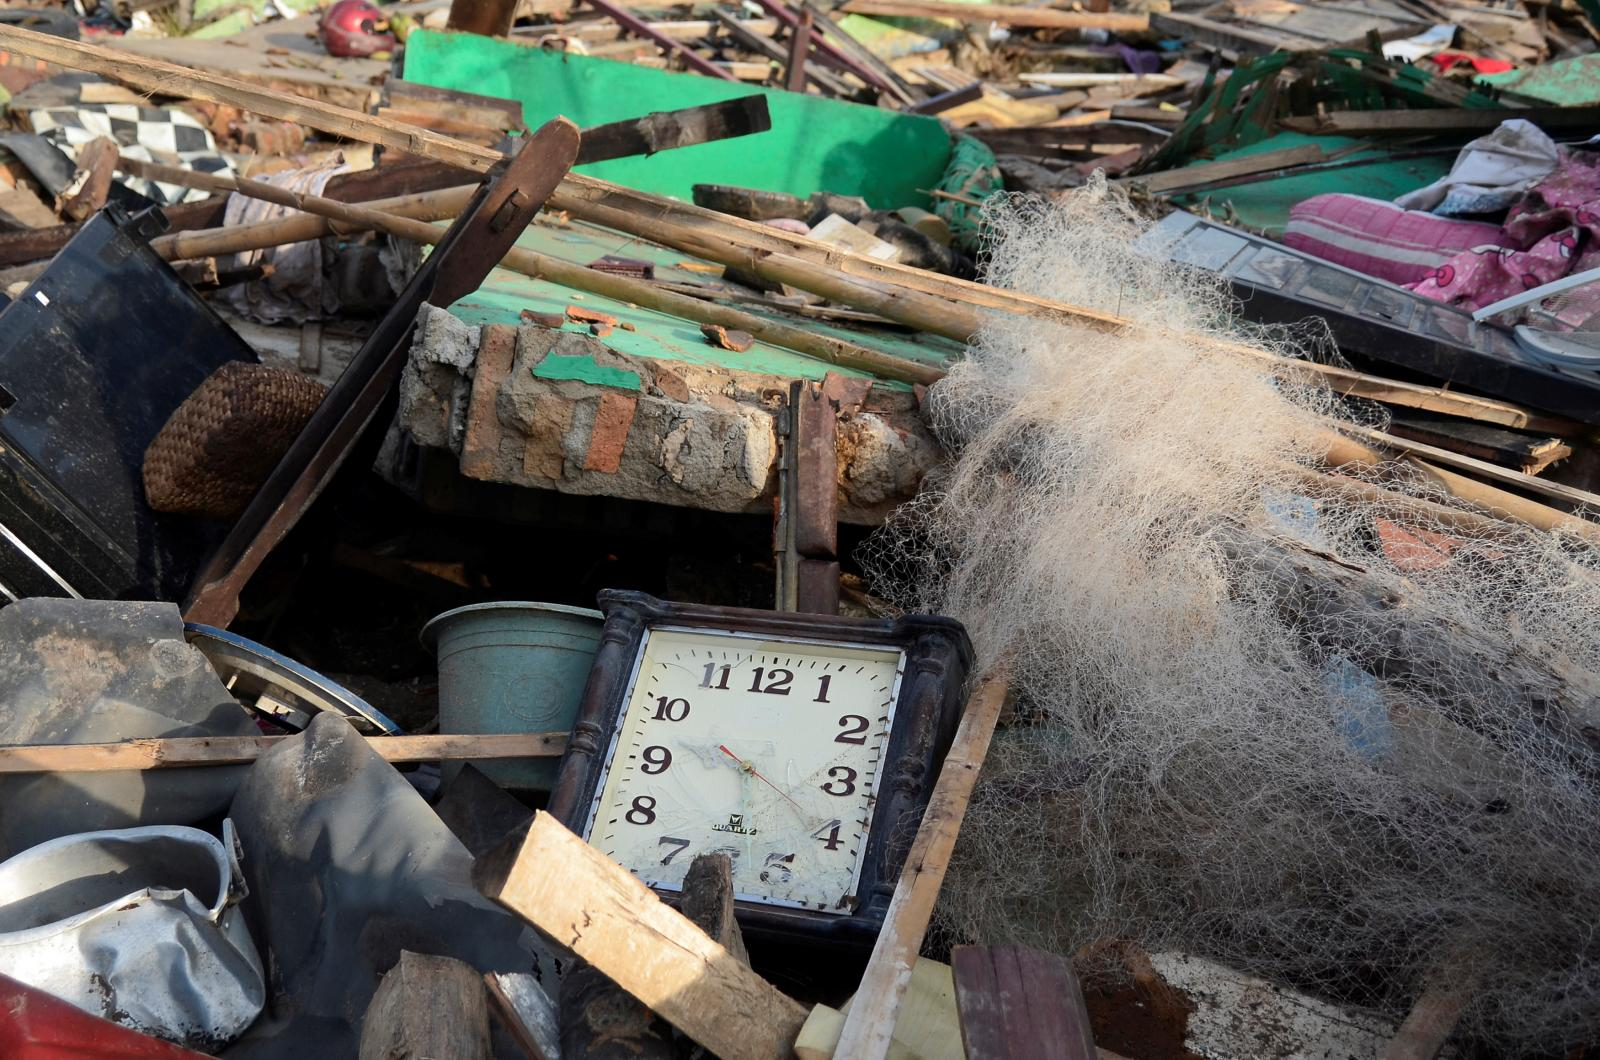 Indonesia's latest tsunami raises global questions over disaster preparedness